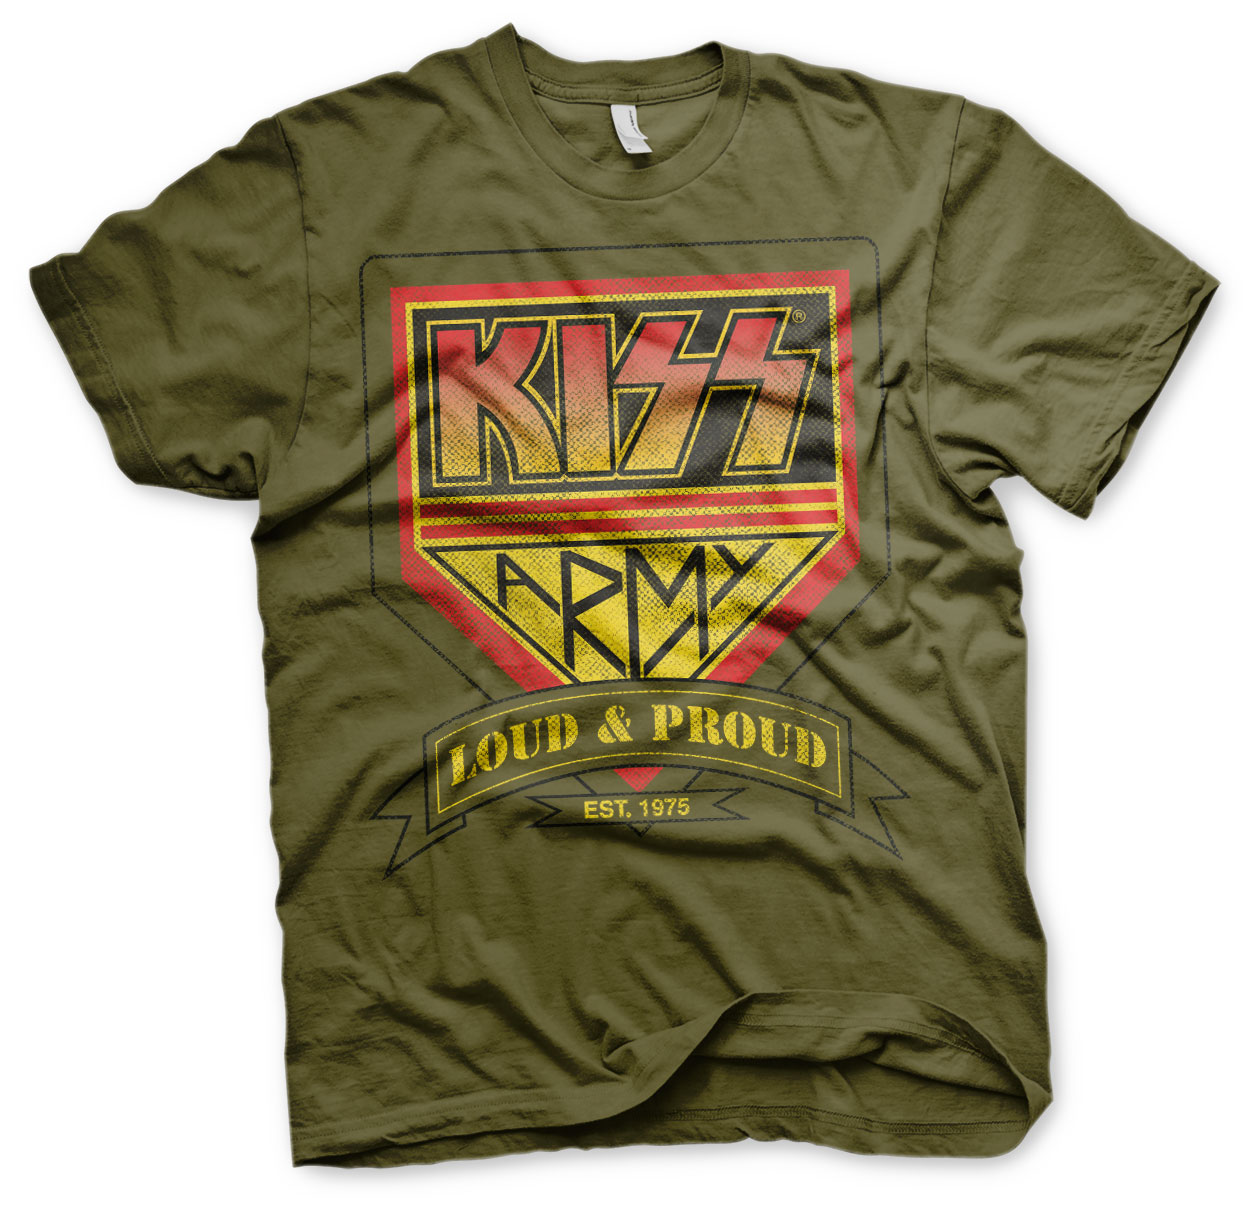 KISS ARMY - Loud & Proud Distressed Logo T-Shirt (olive)